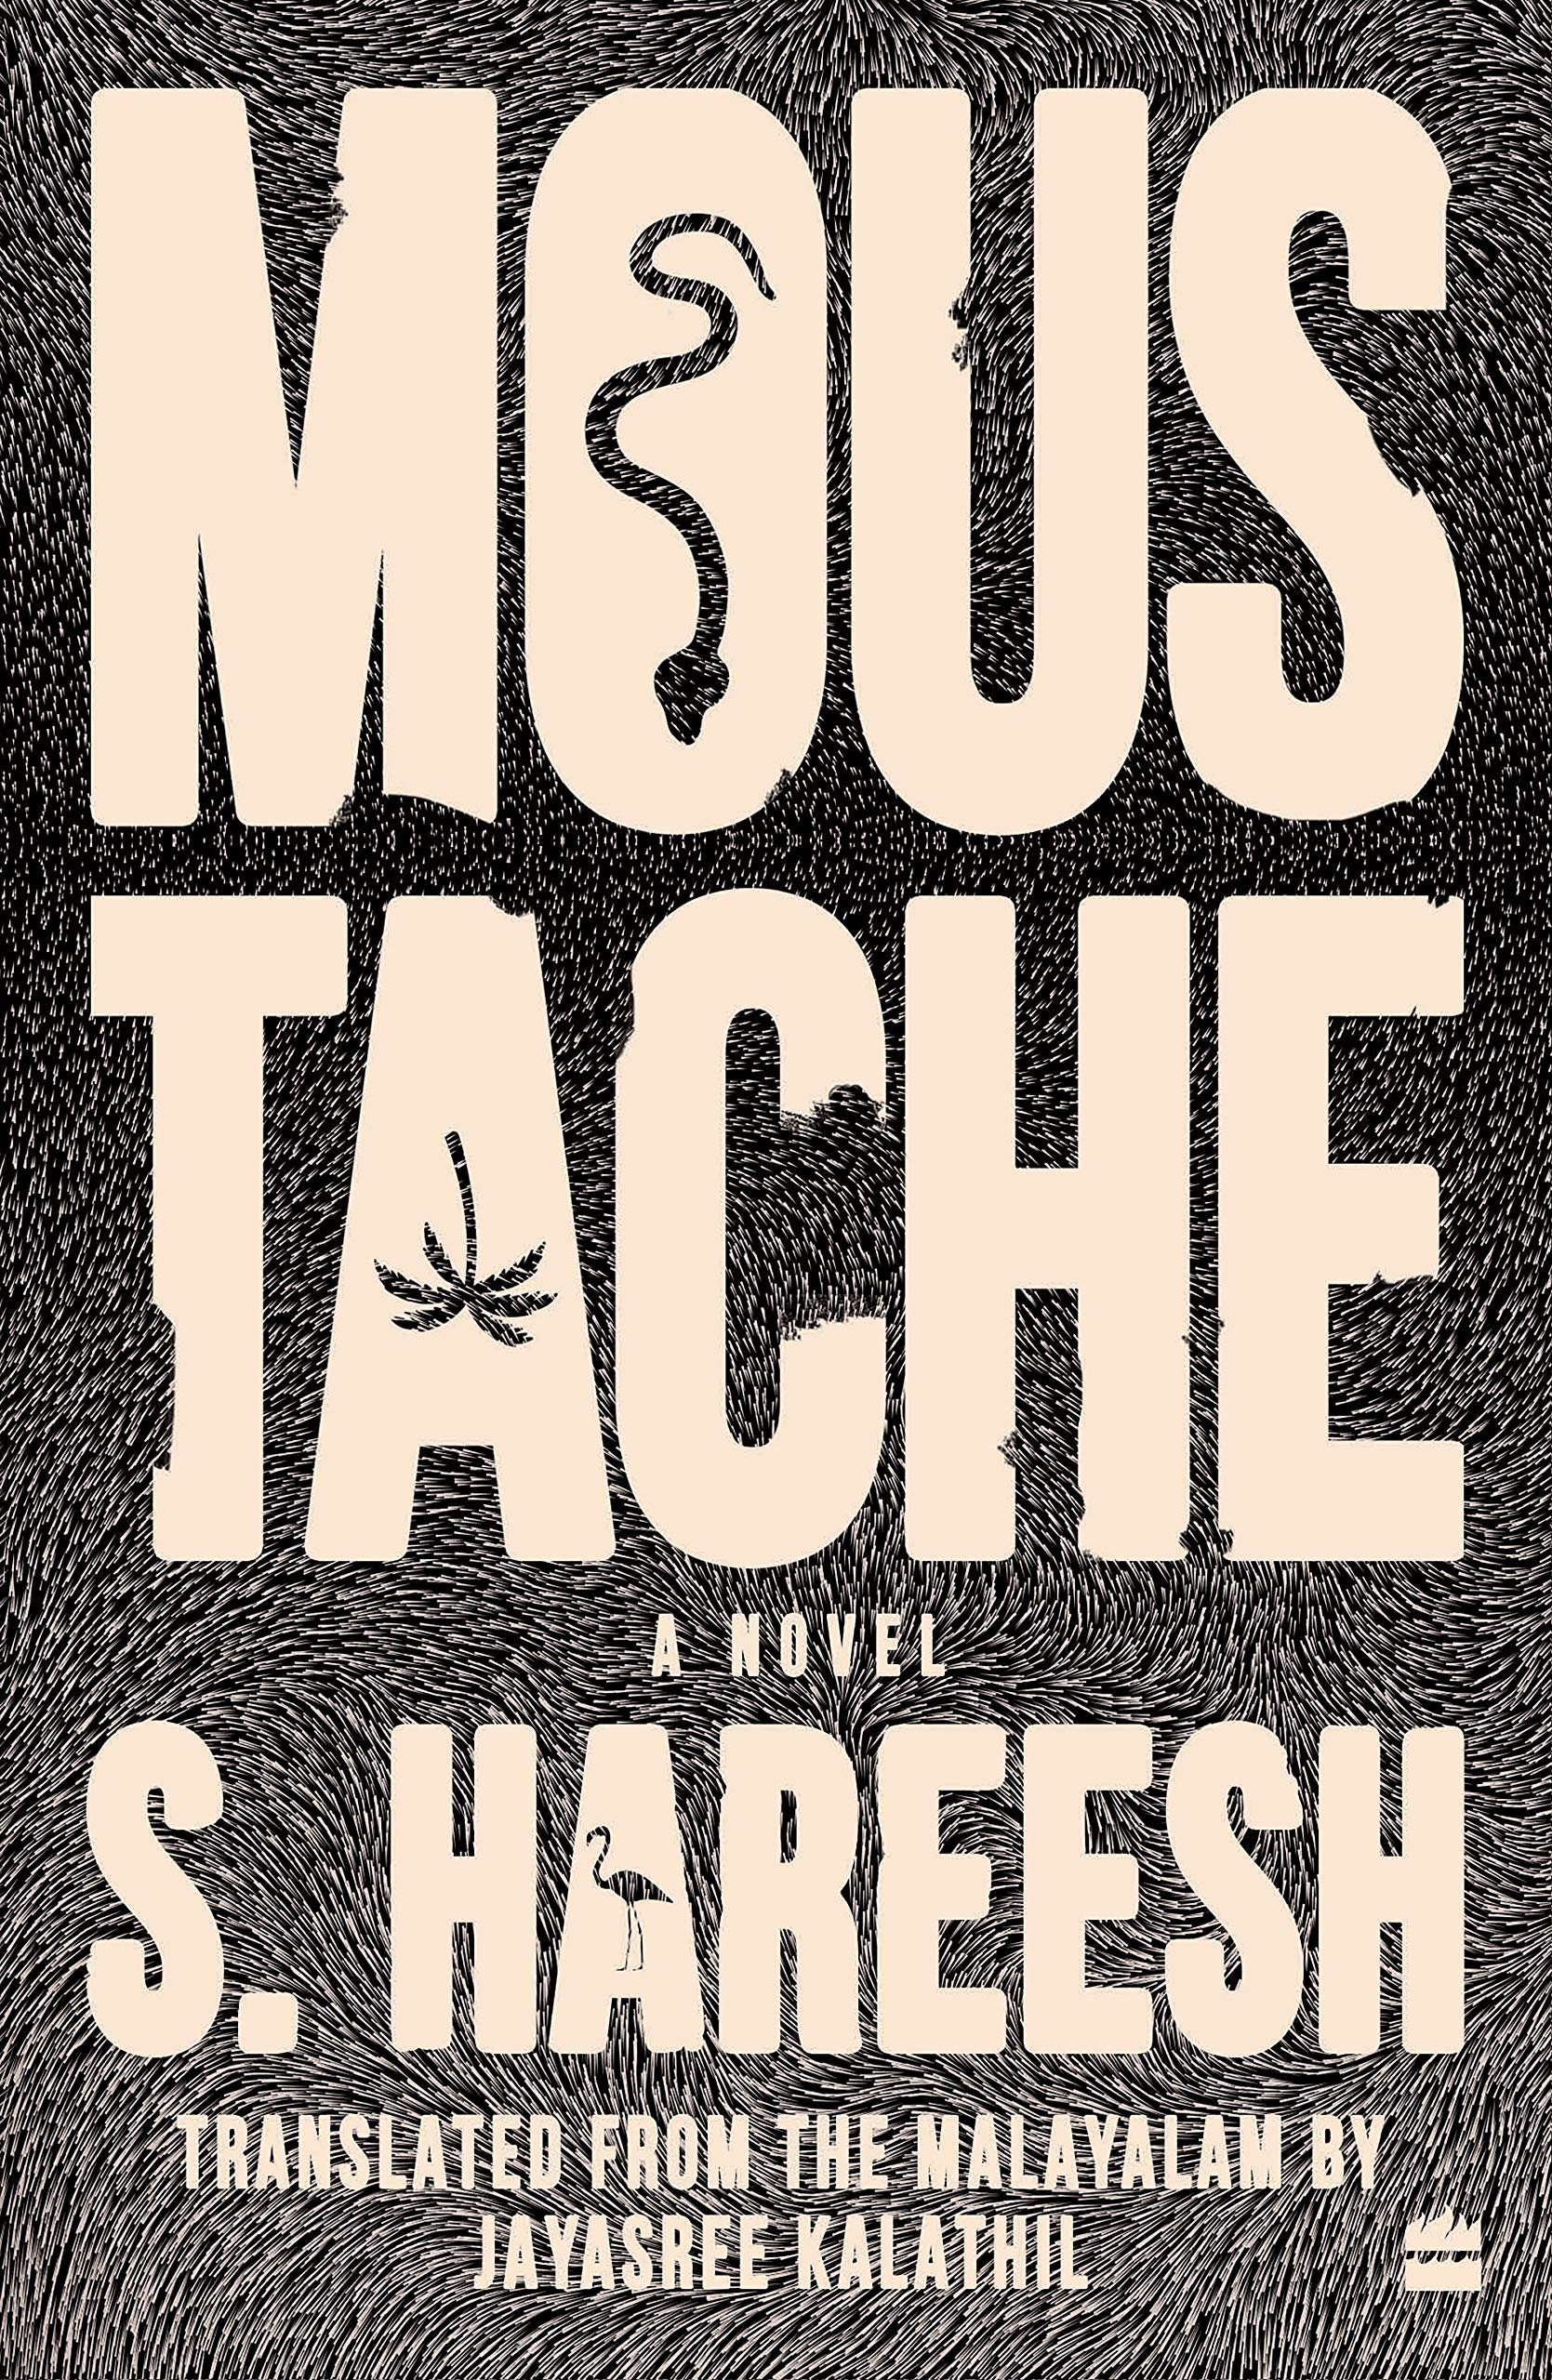 Buy Moustache Book Online at Low Prices in India | Moustache Reviews &  Ratings - Amazon.in